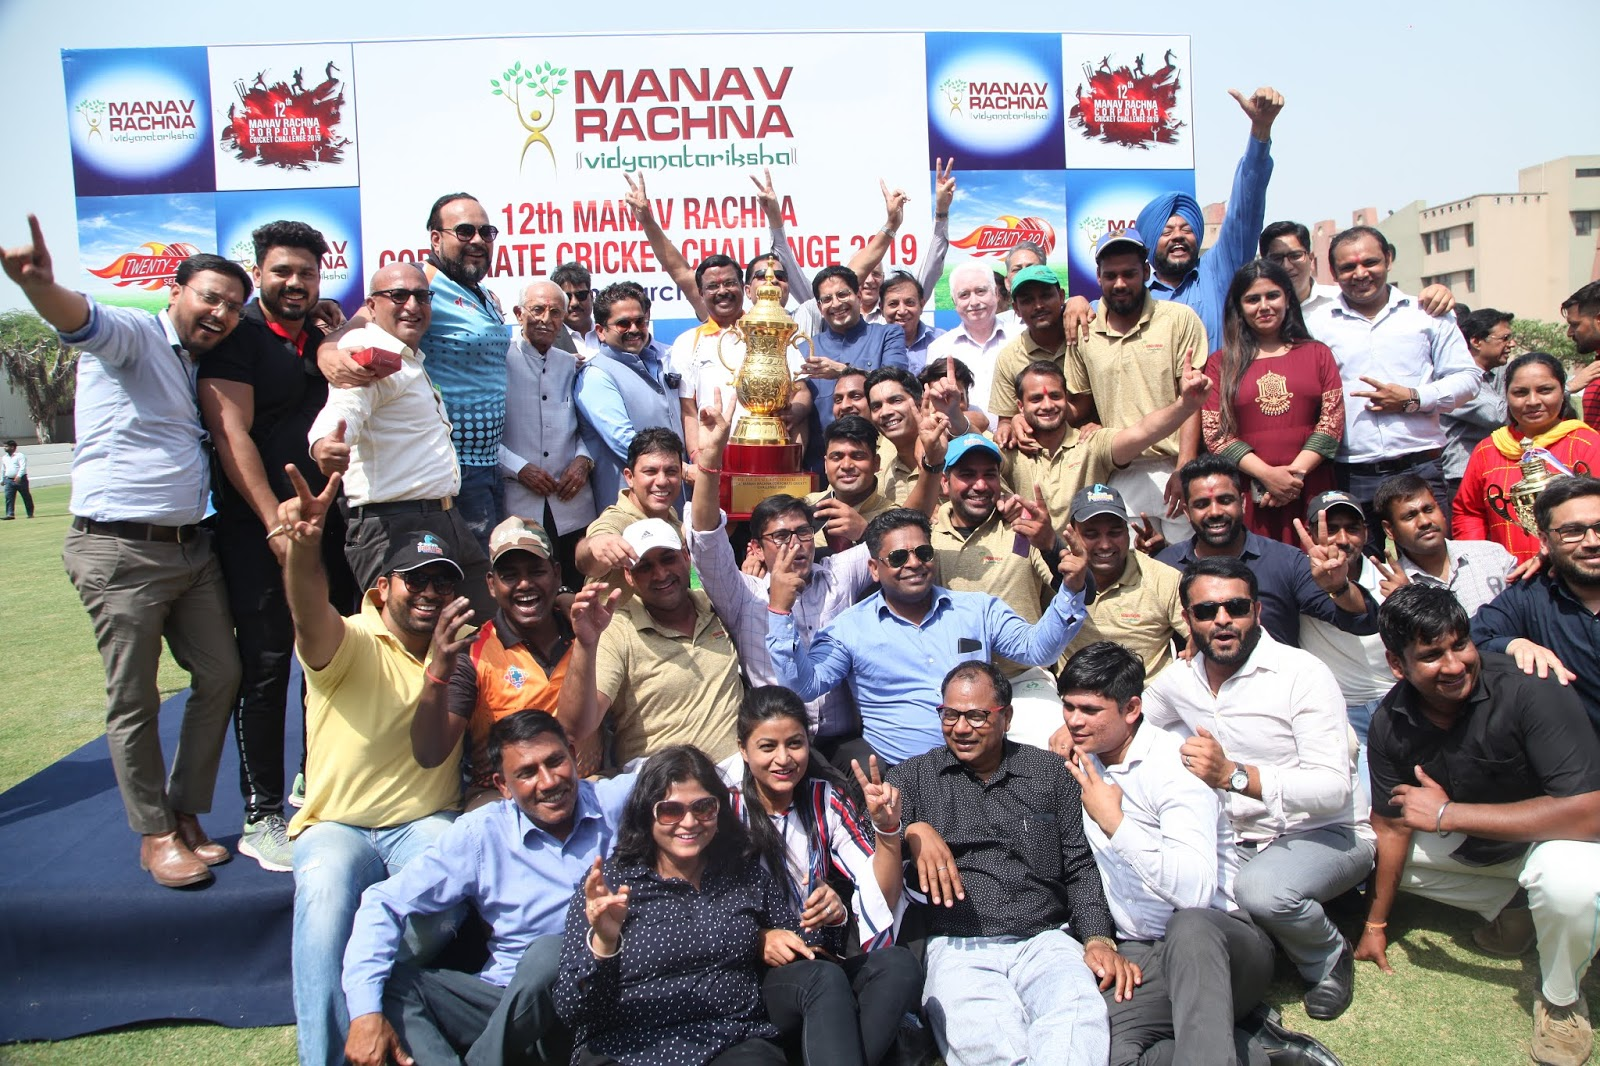 Manav Rachna 12th Corporate Cricket Challenge : WIN Asian Hospital